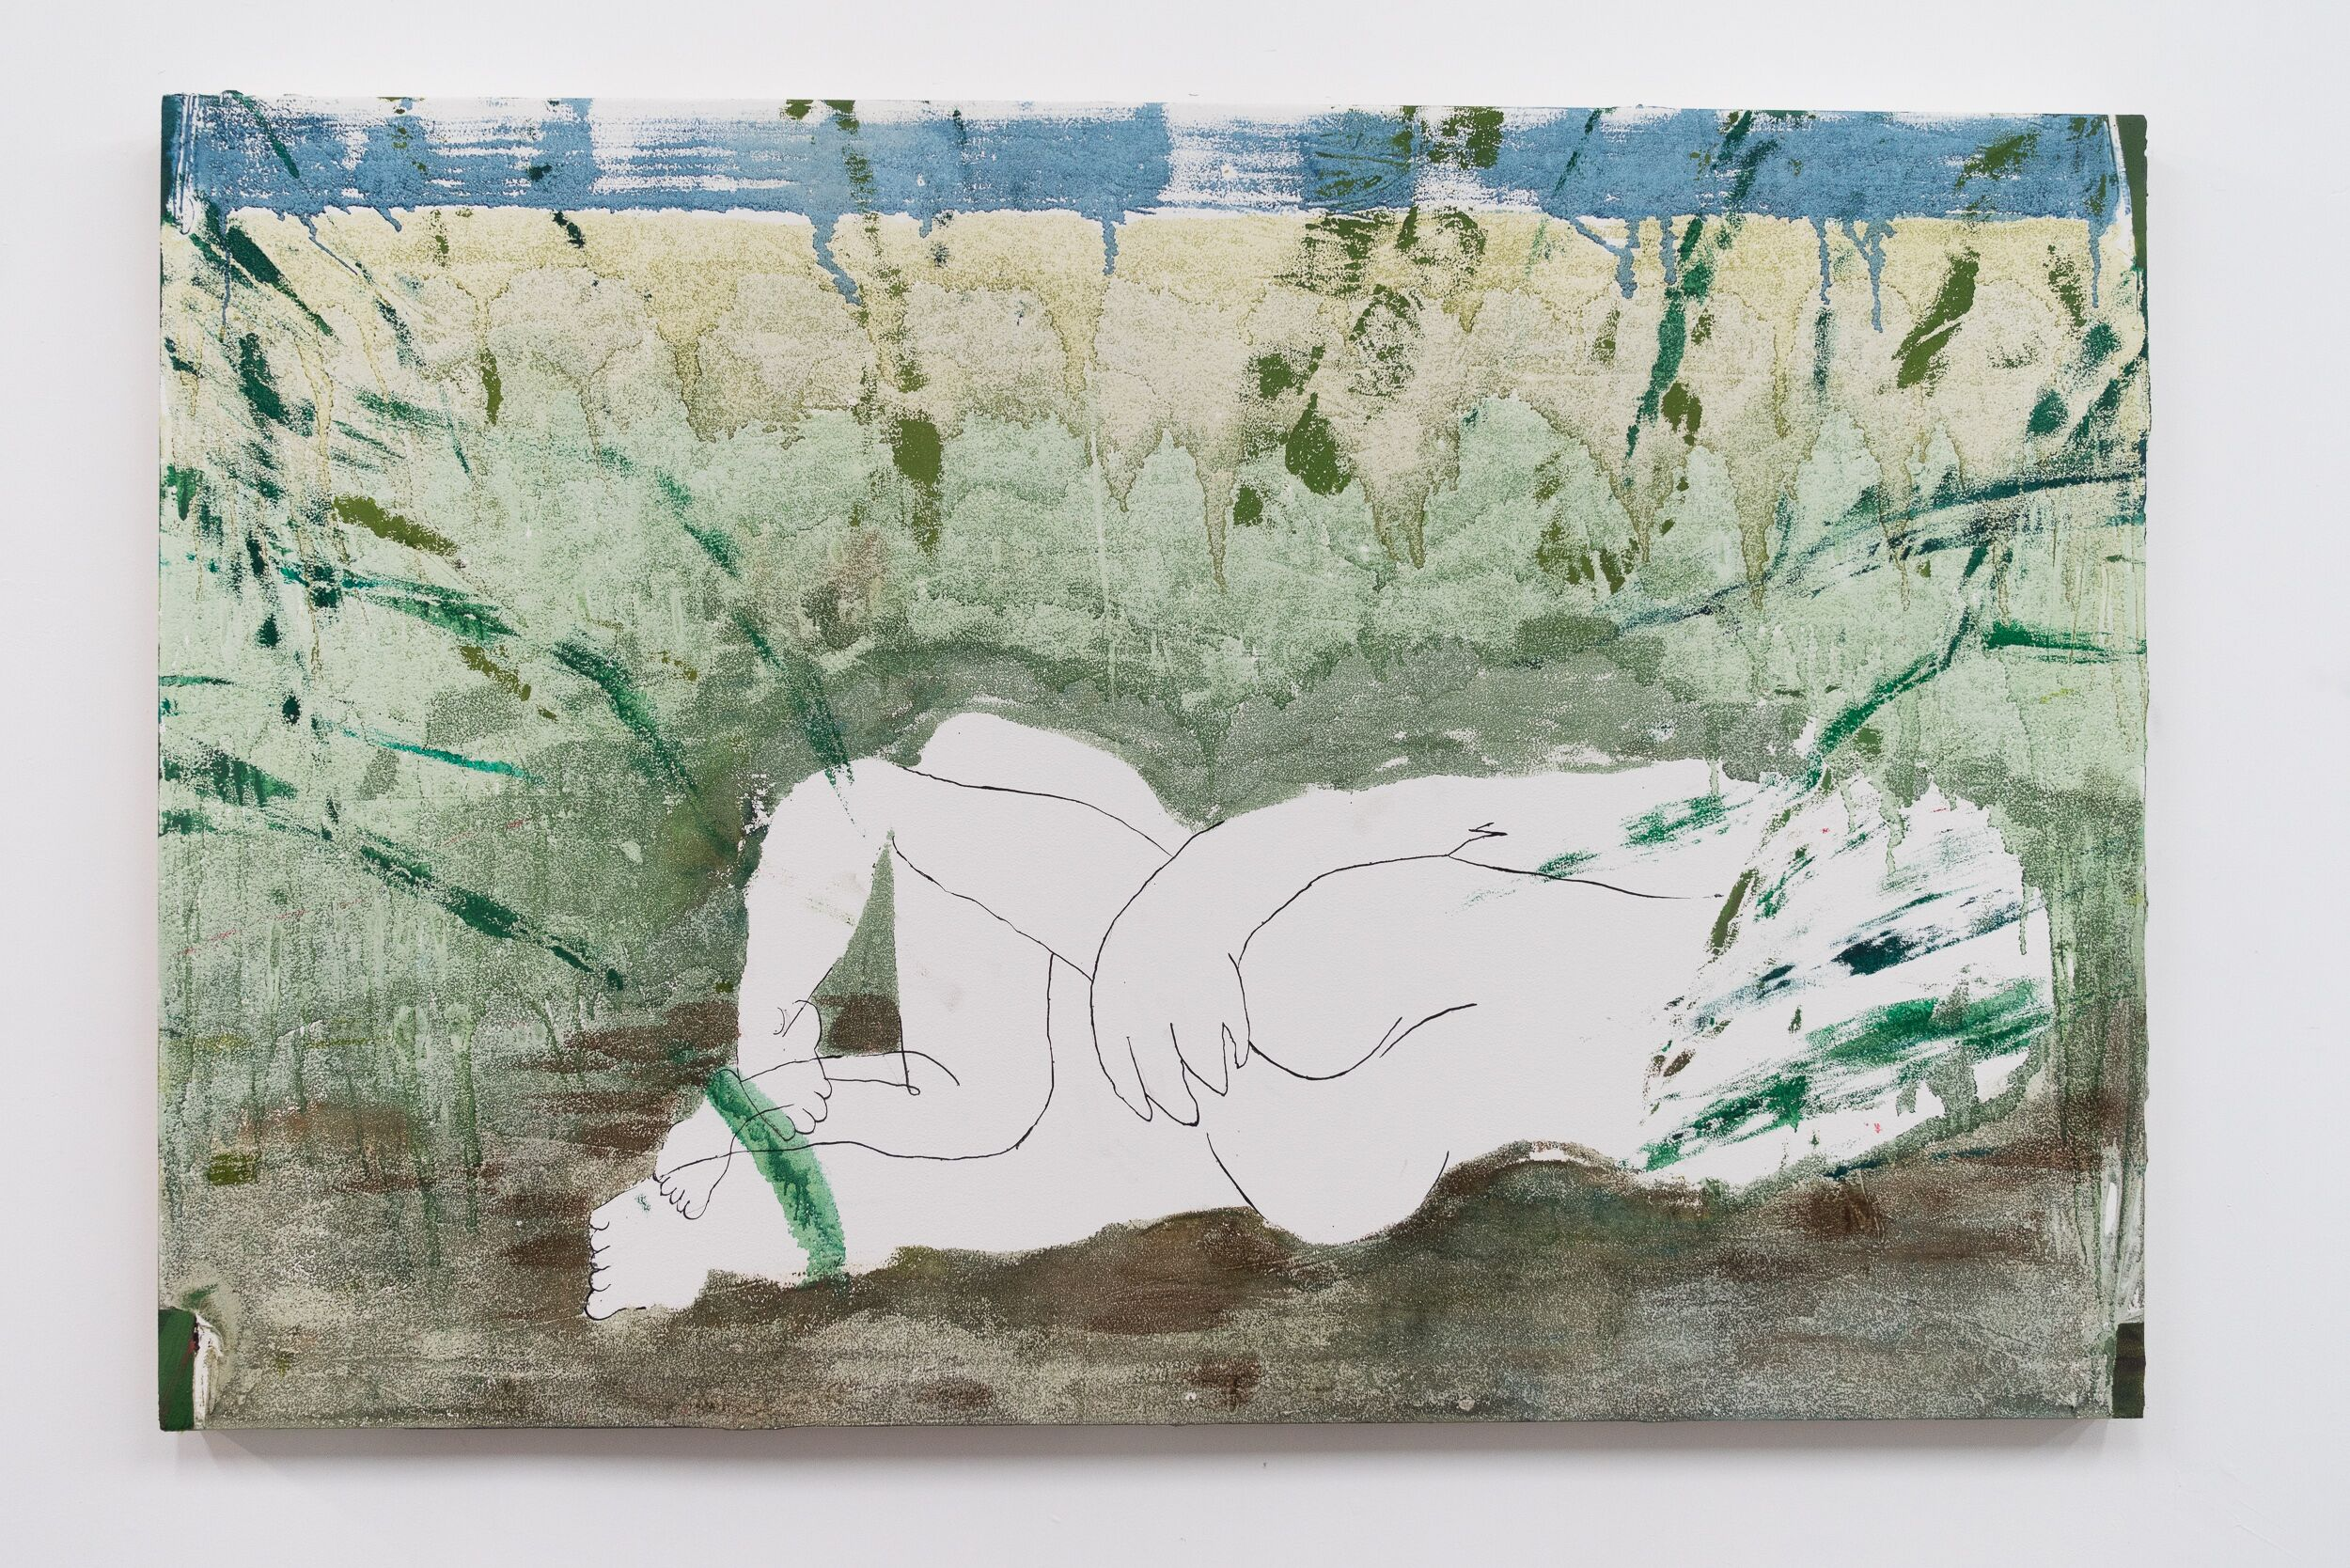 Emilie Gossiaux    Blurry Vision (After Making Out) , 2018 Oil paint on drywall   48 x 72 inches 121.9 cm x 182.9 cm